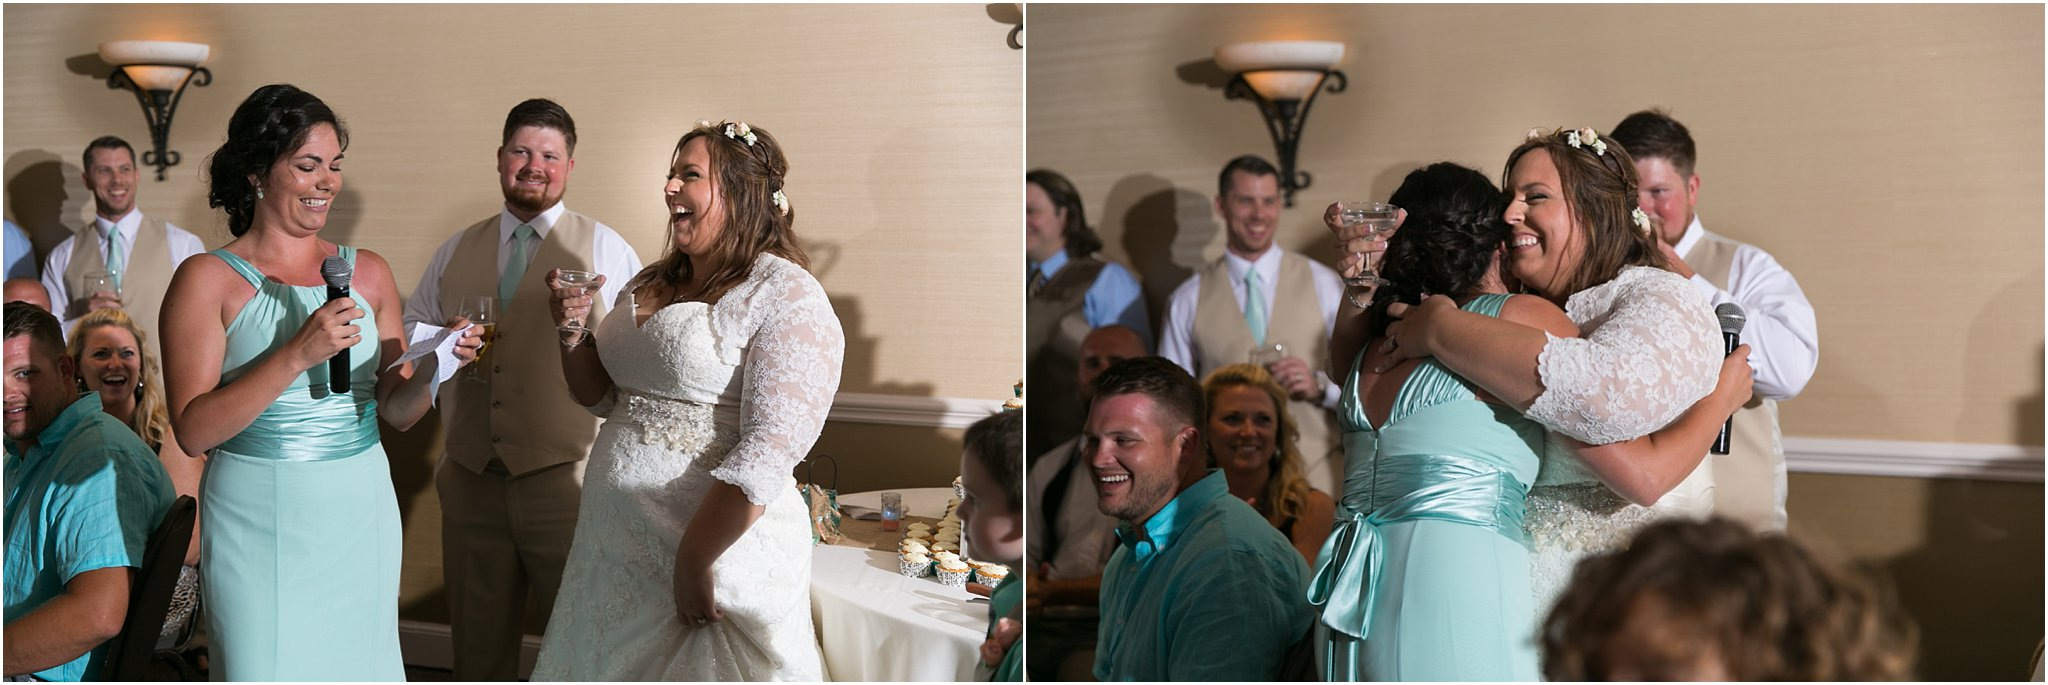 jessica_ryan_photography_virginia_beach_wedding_the_wyndham_oceanfront_beach_wedding_0893